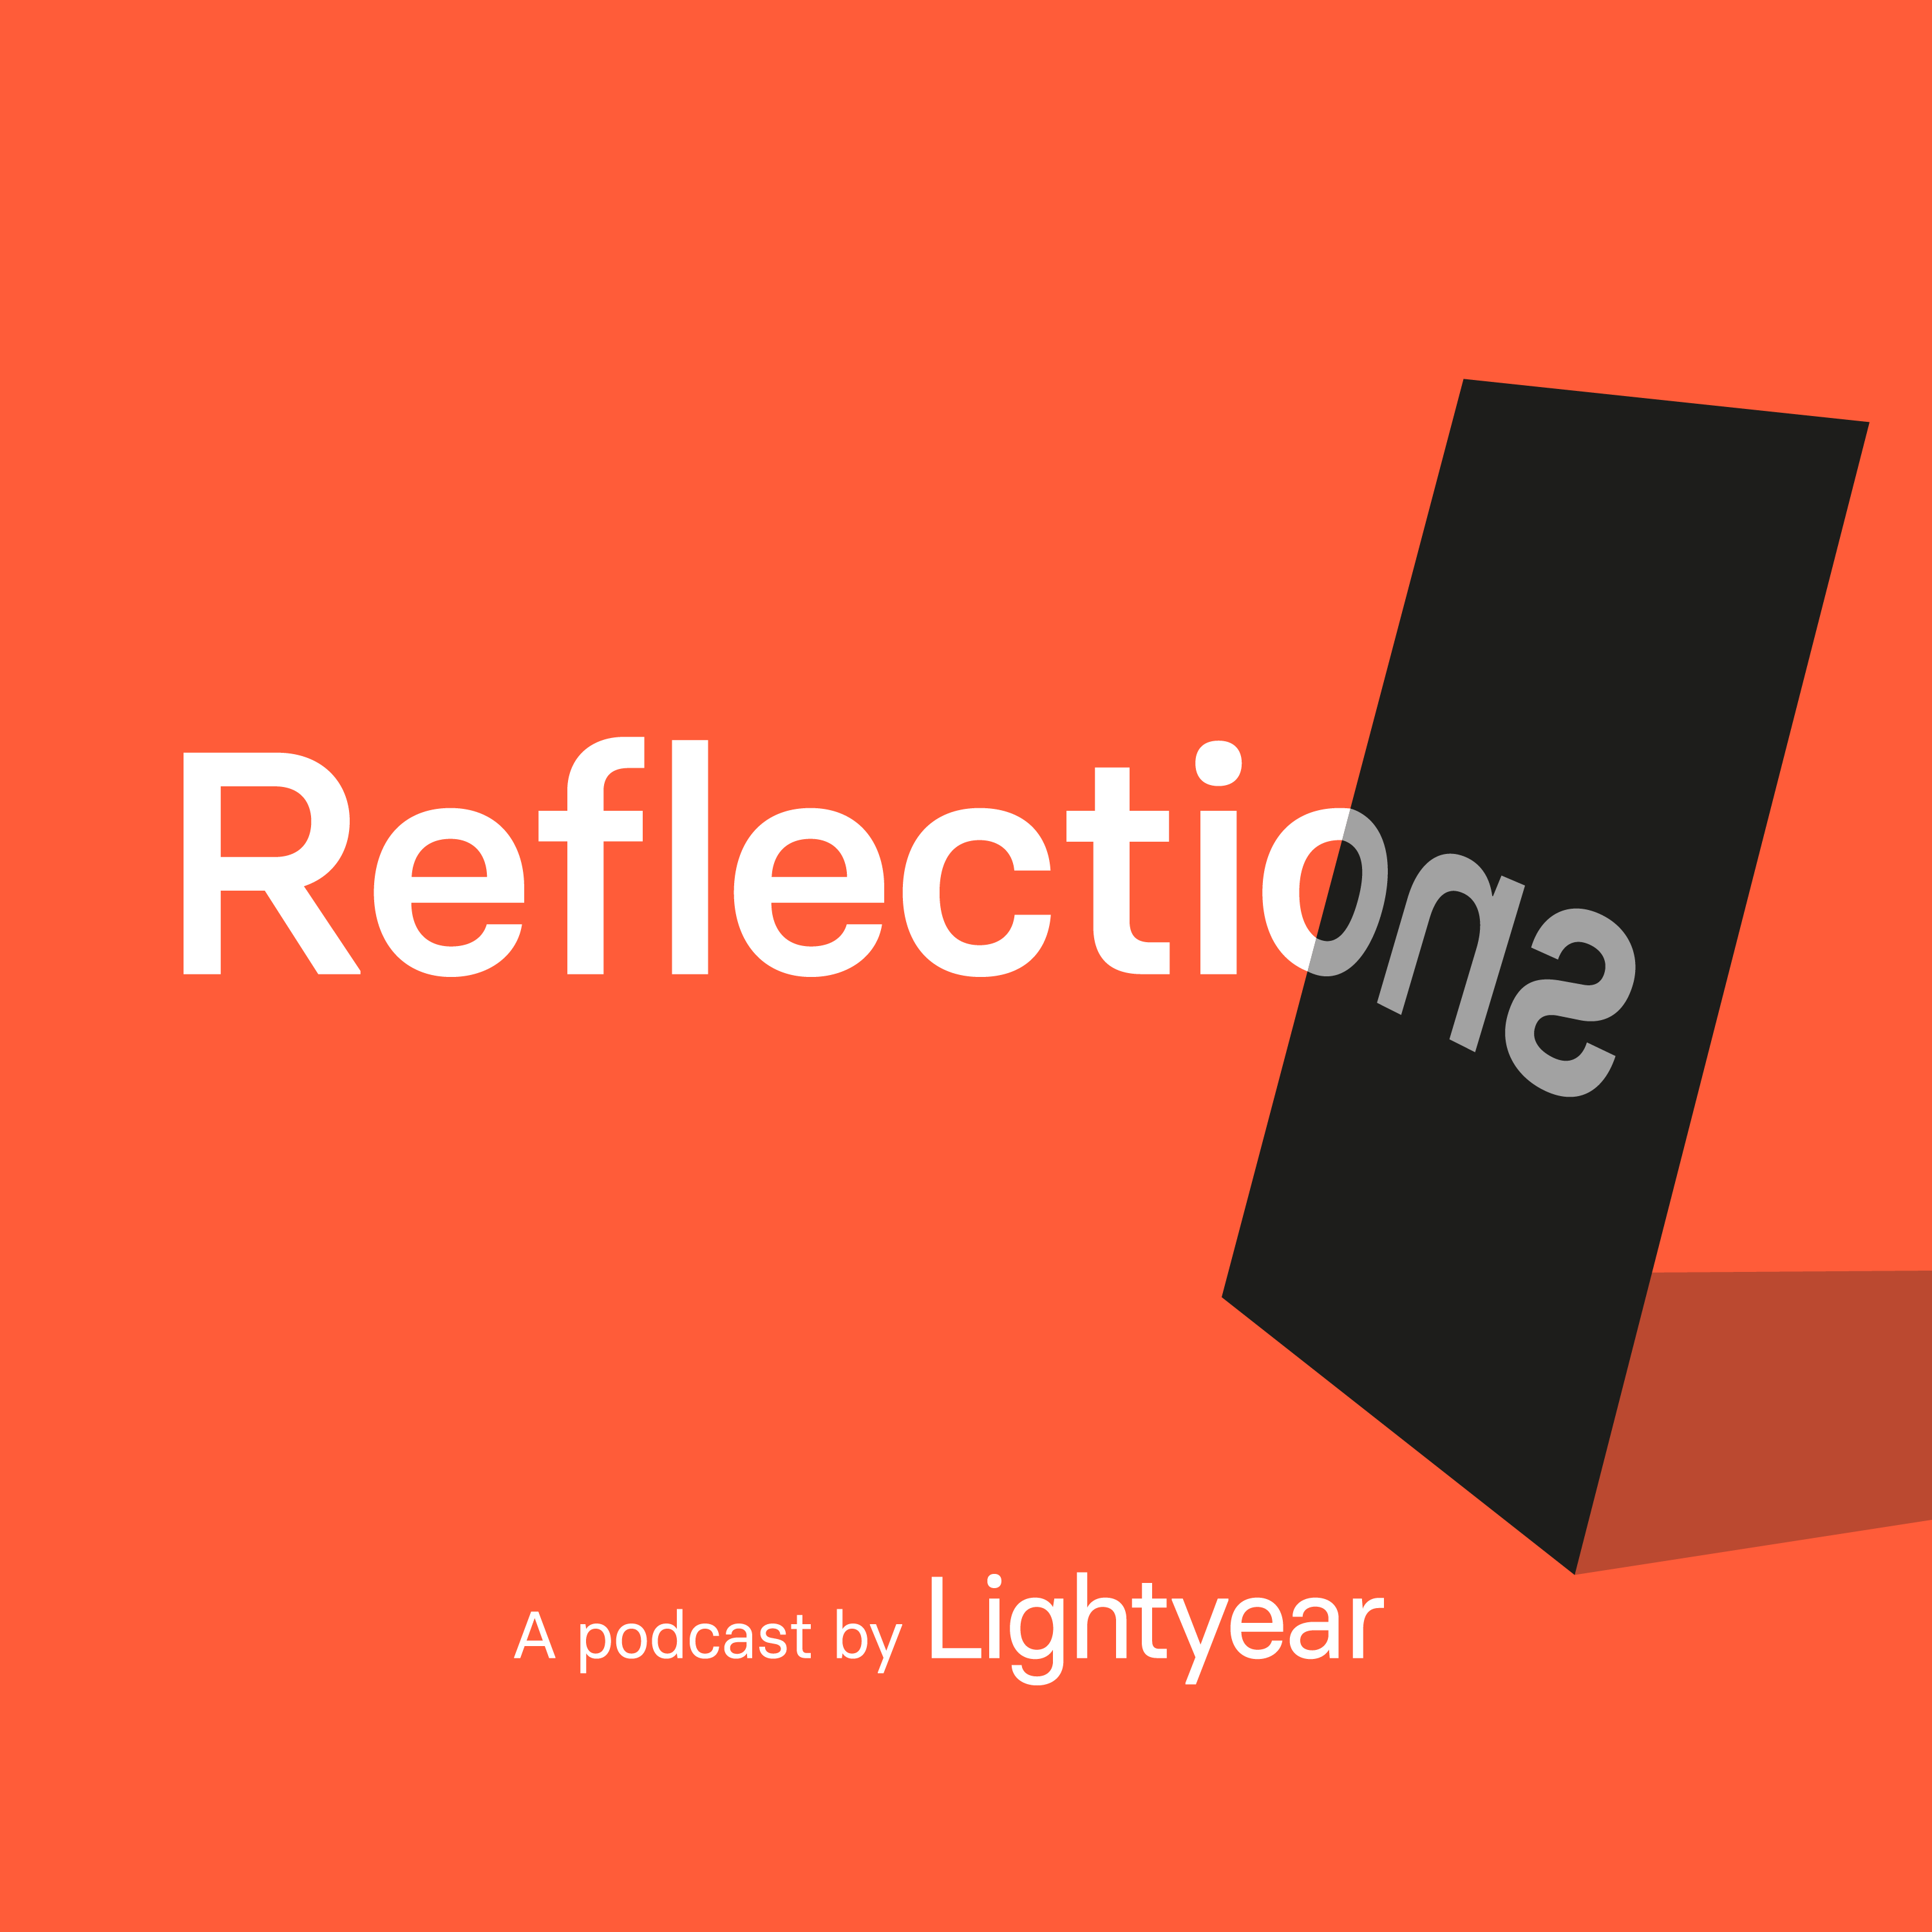 Reflections — A podcast by Lightyear Image